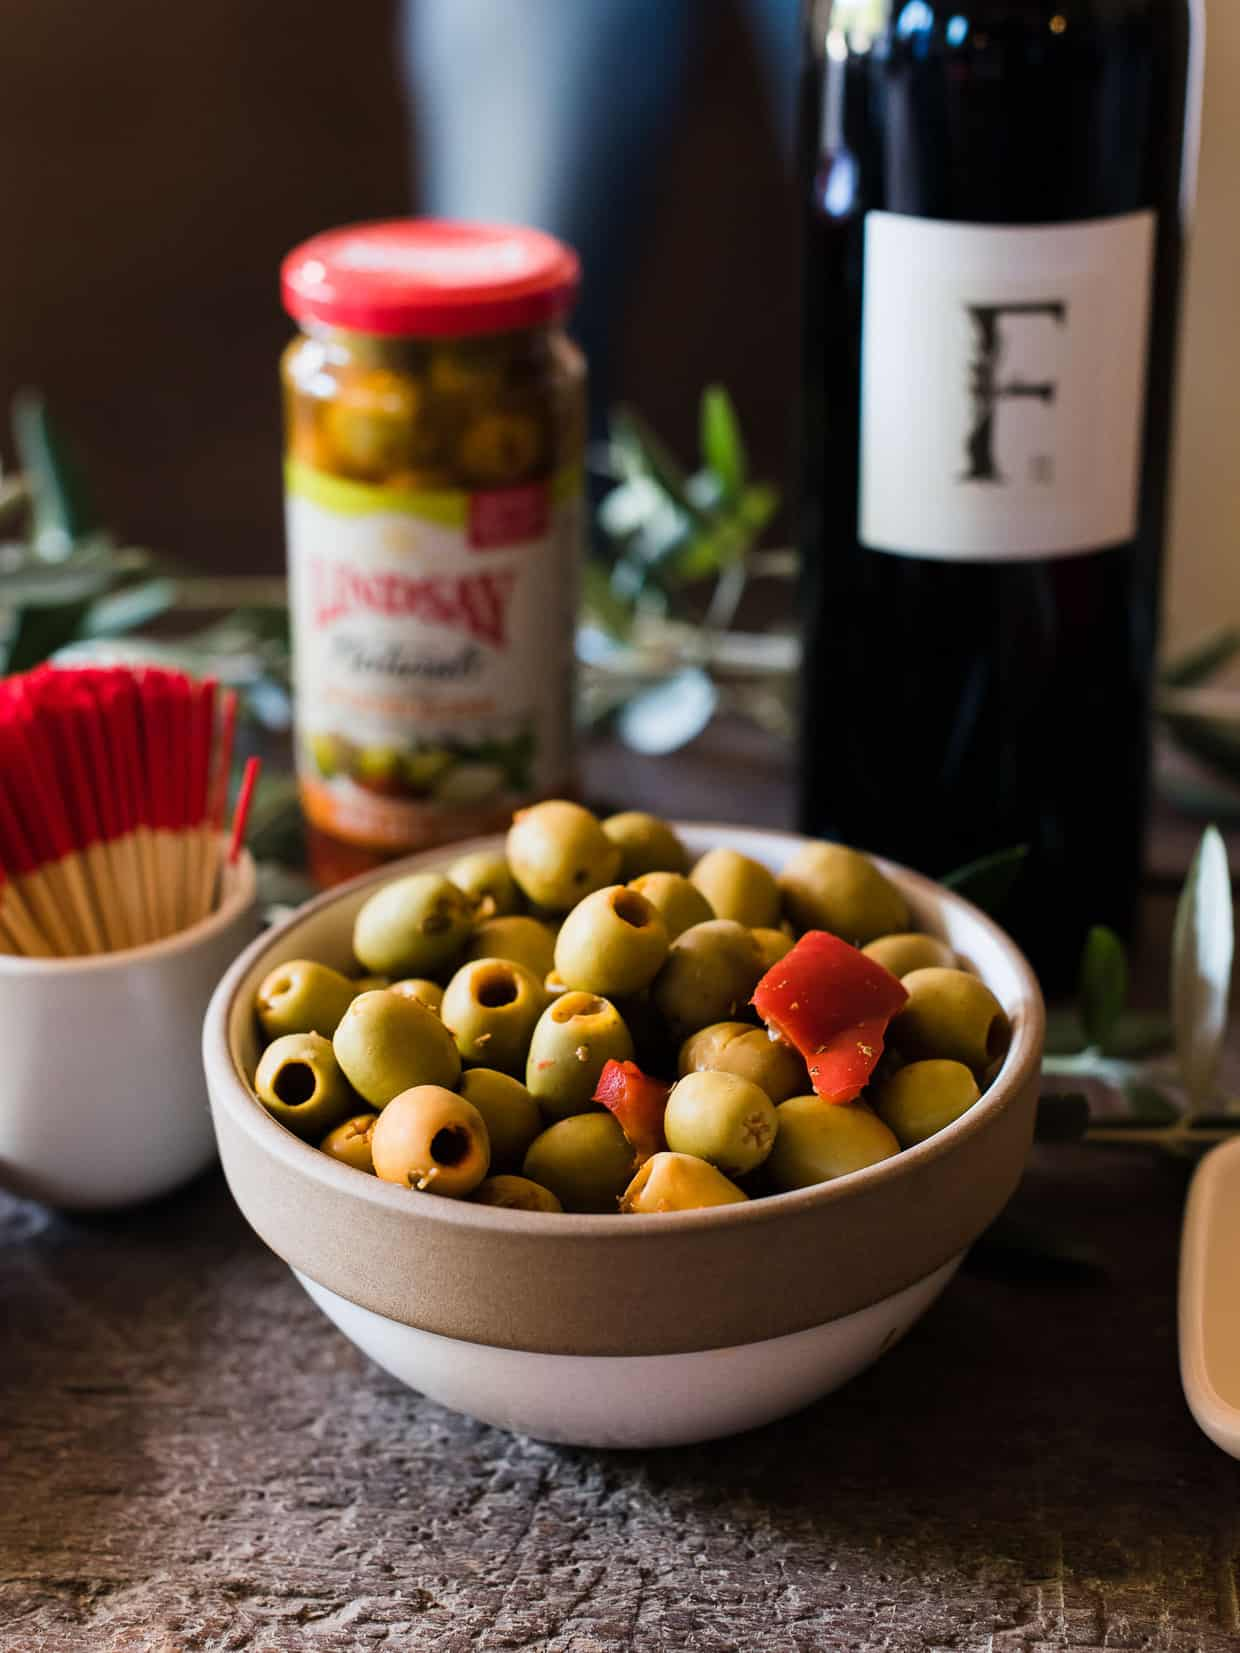 Olive and wine pairing